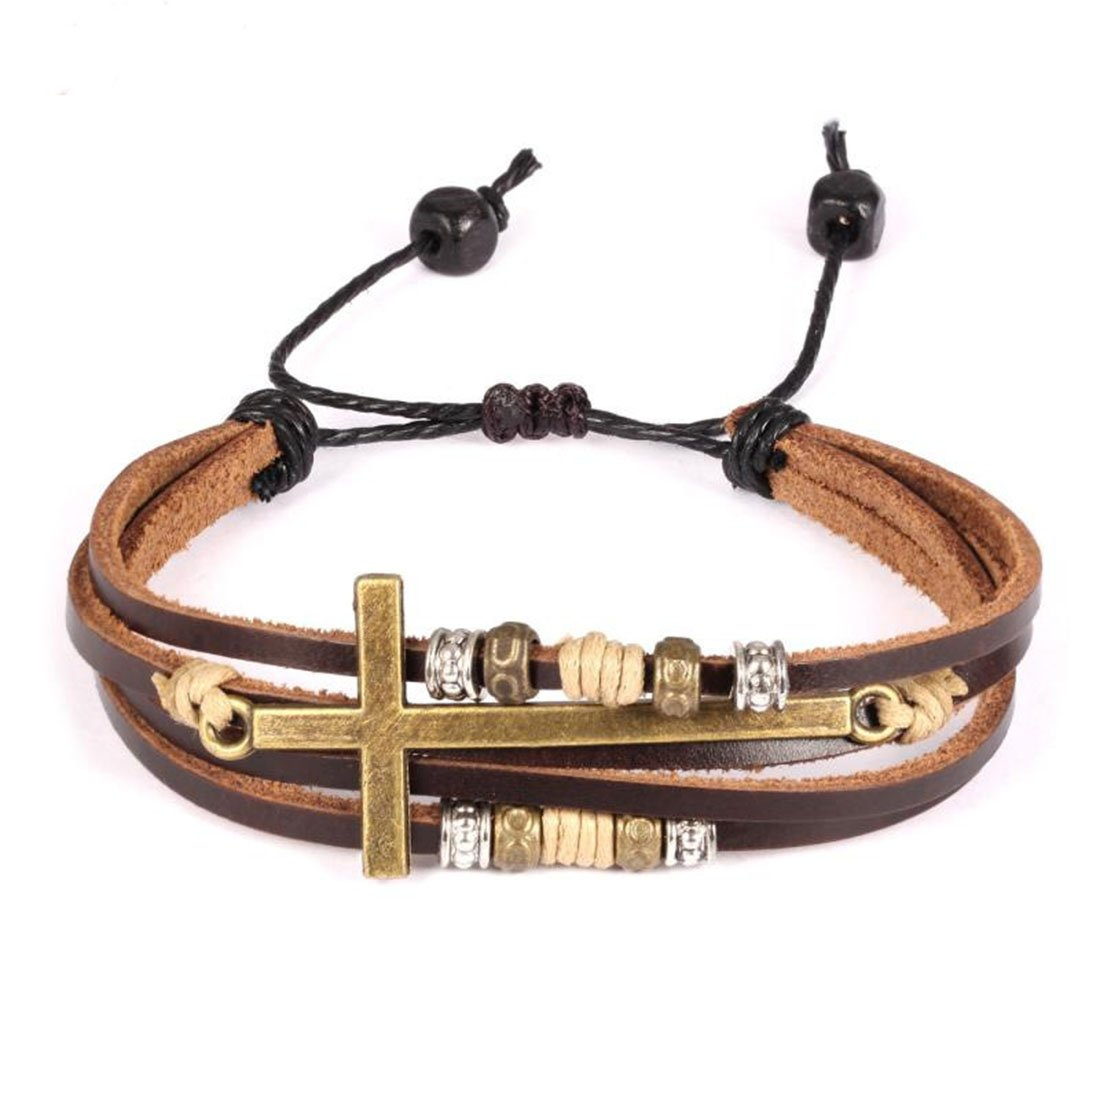 Feraco Leather Bracelet Cross Religious Christian Vintage Brown Gold Alloy Multi Rope Wrap Bangle Adjustable ASJ150525